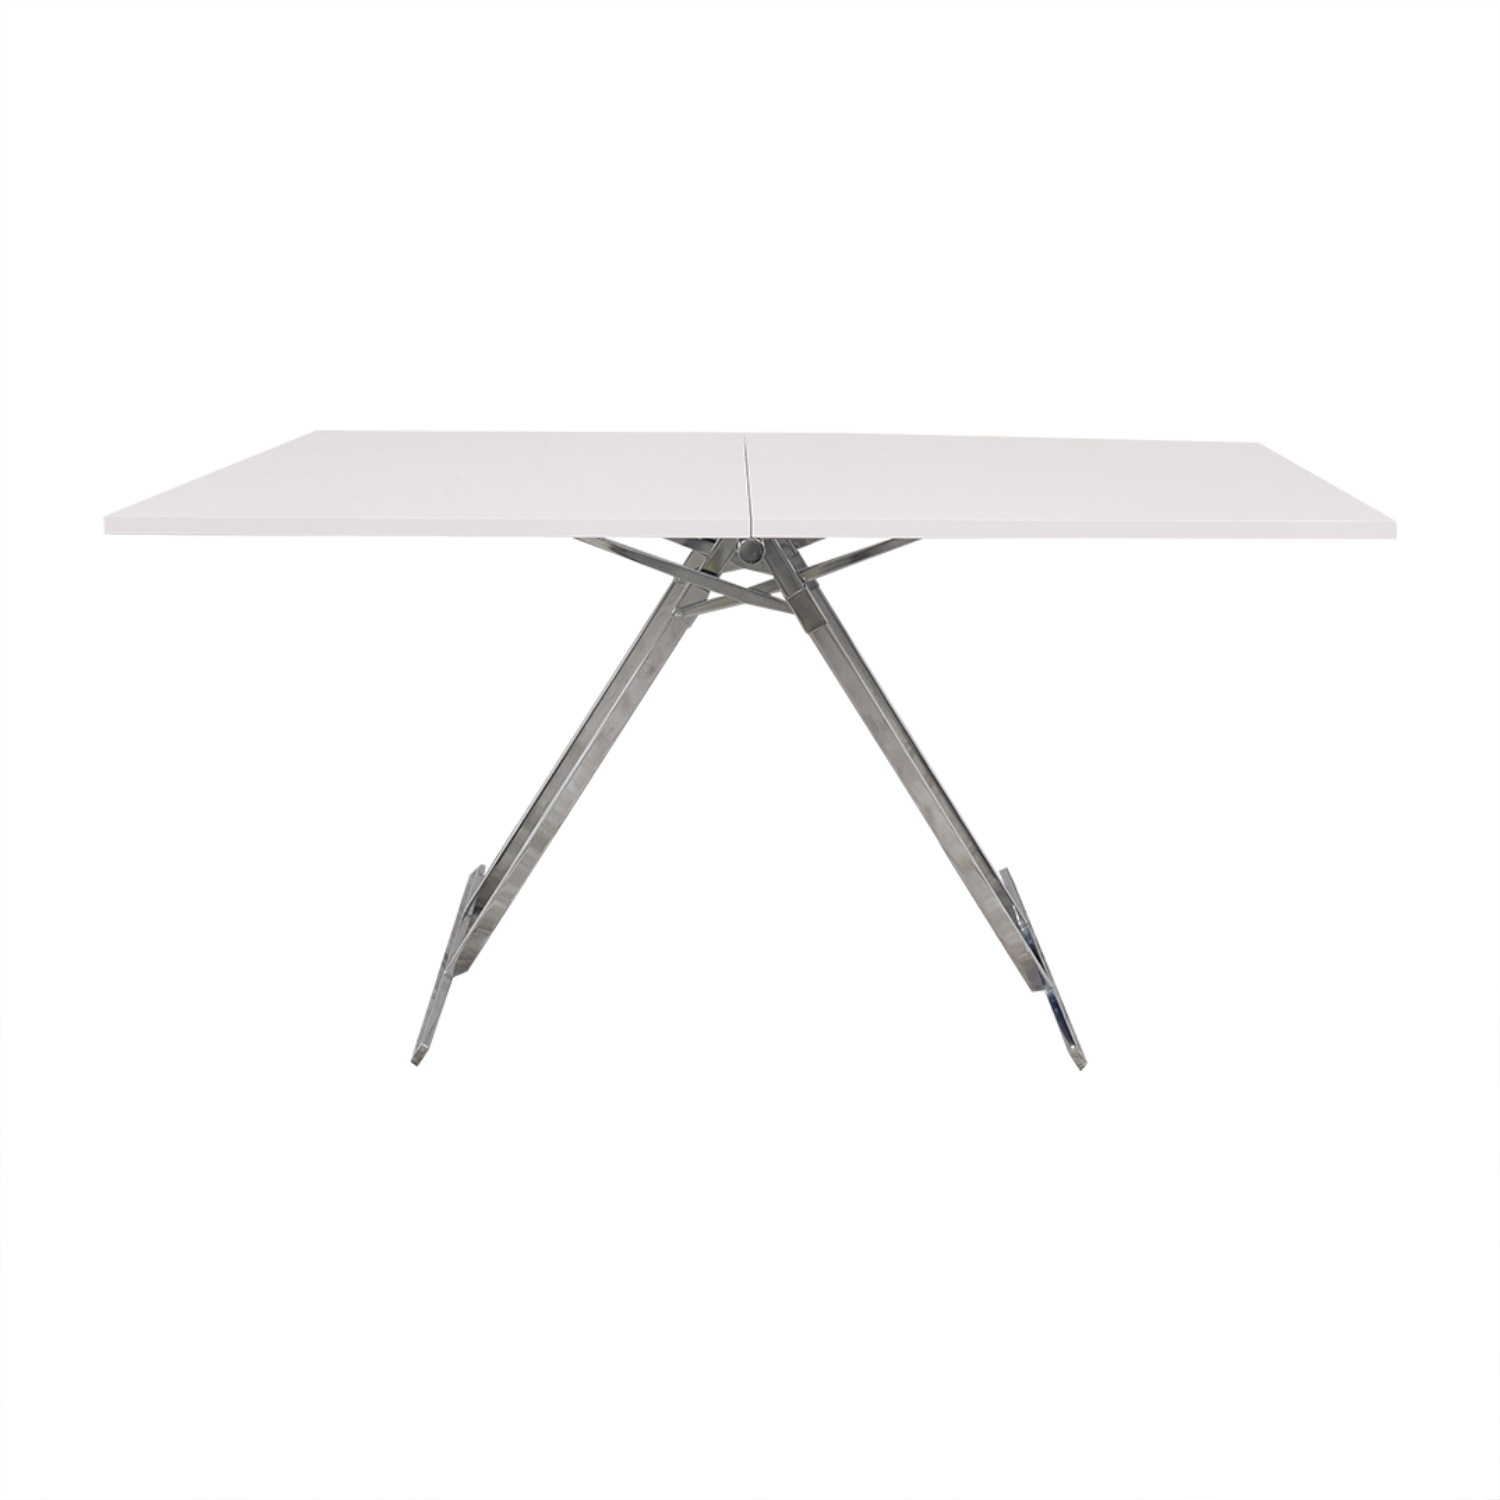 Ligne Roset Nils Frederking F-10 Folding Table for Ligne Roset second hand